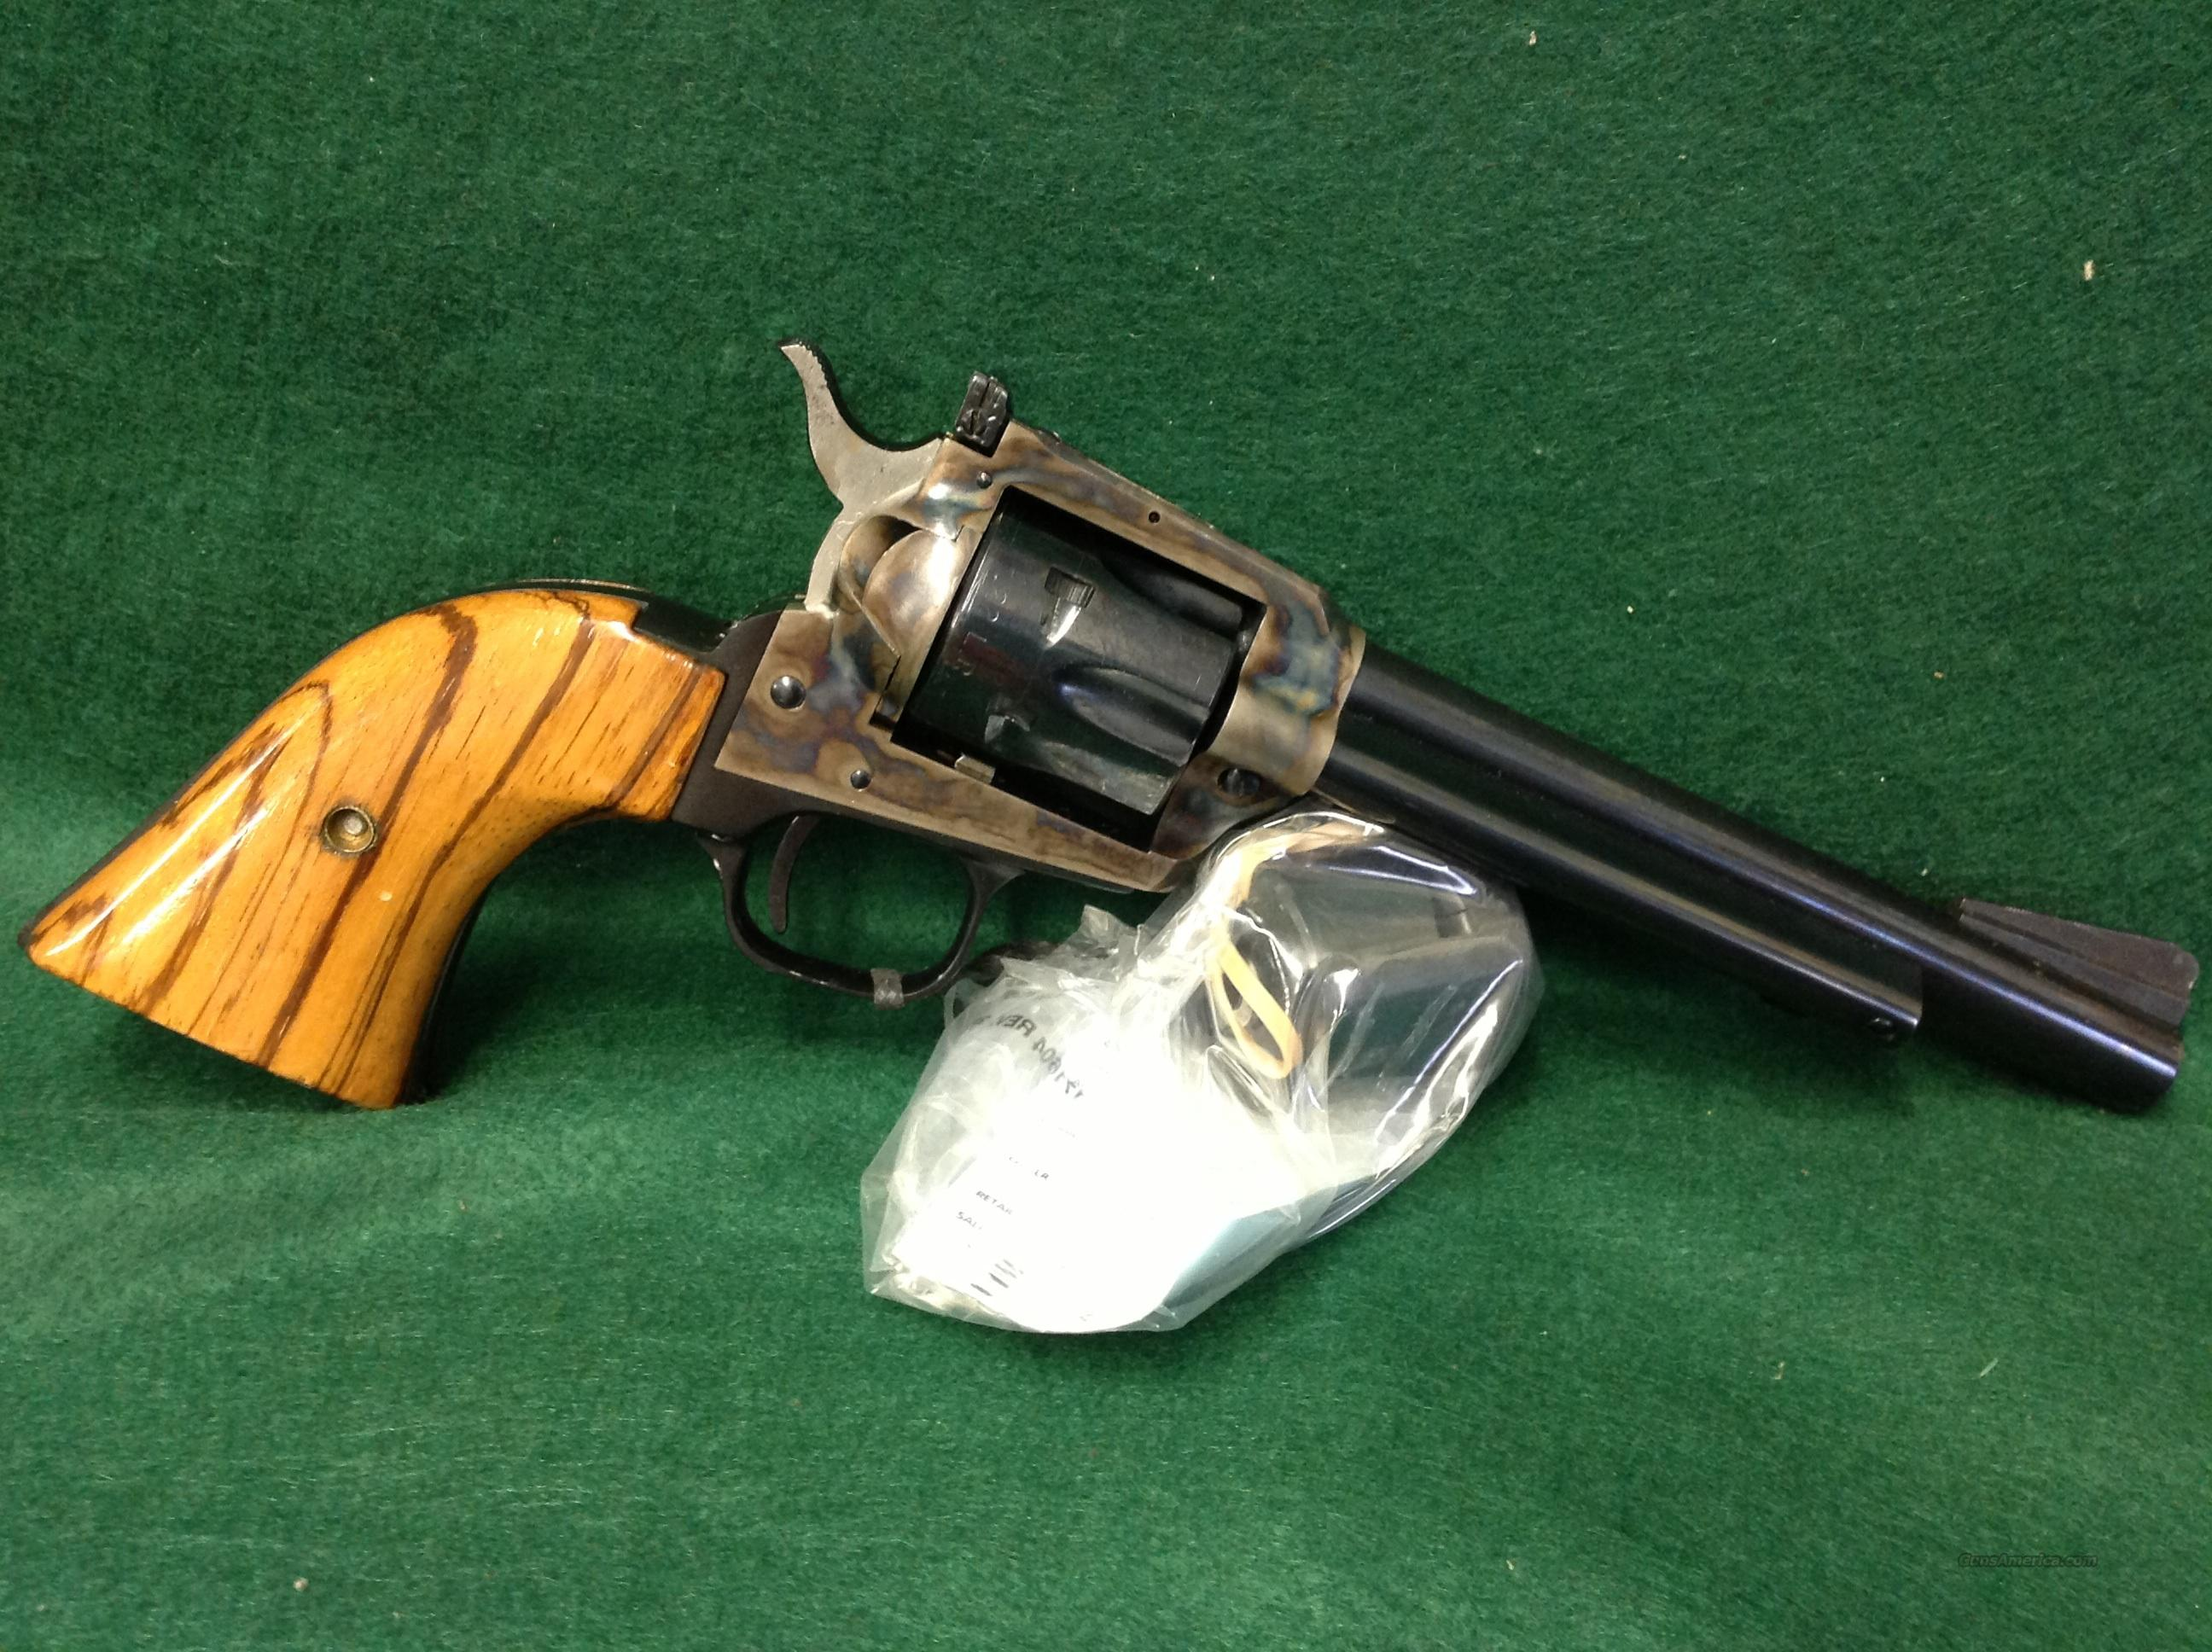 Colt New Frontier 22LR/22Mag  Guns > Pistols > Colt Single Action Revolvers - Modern (22 Cal.)